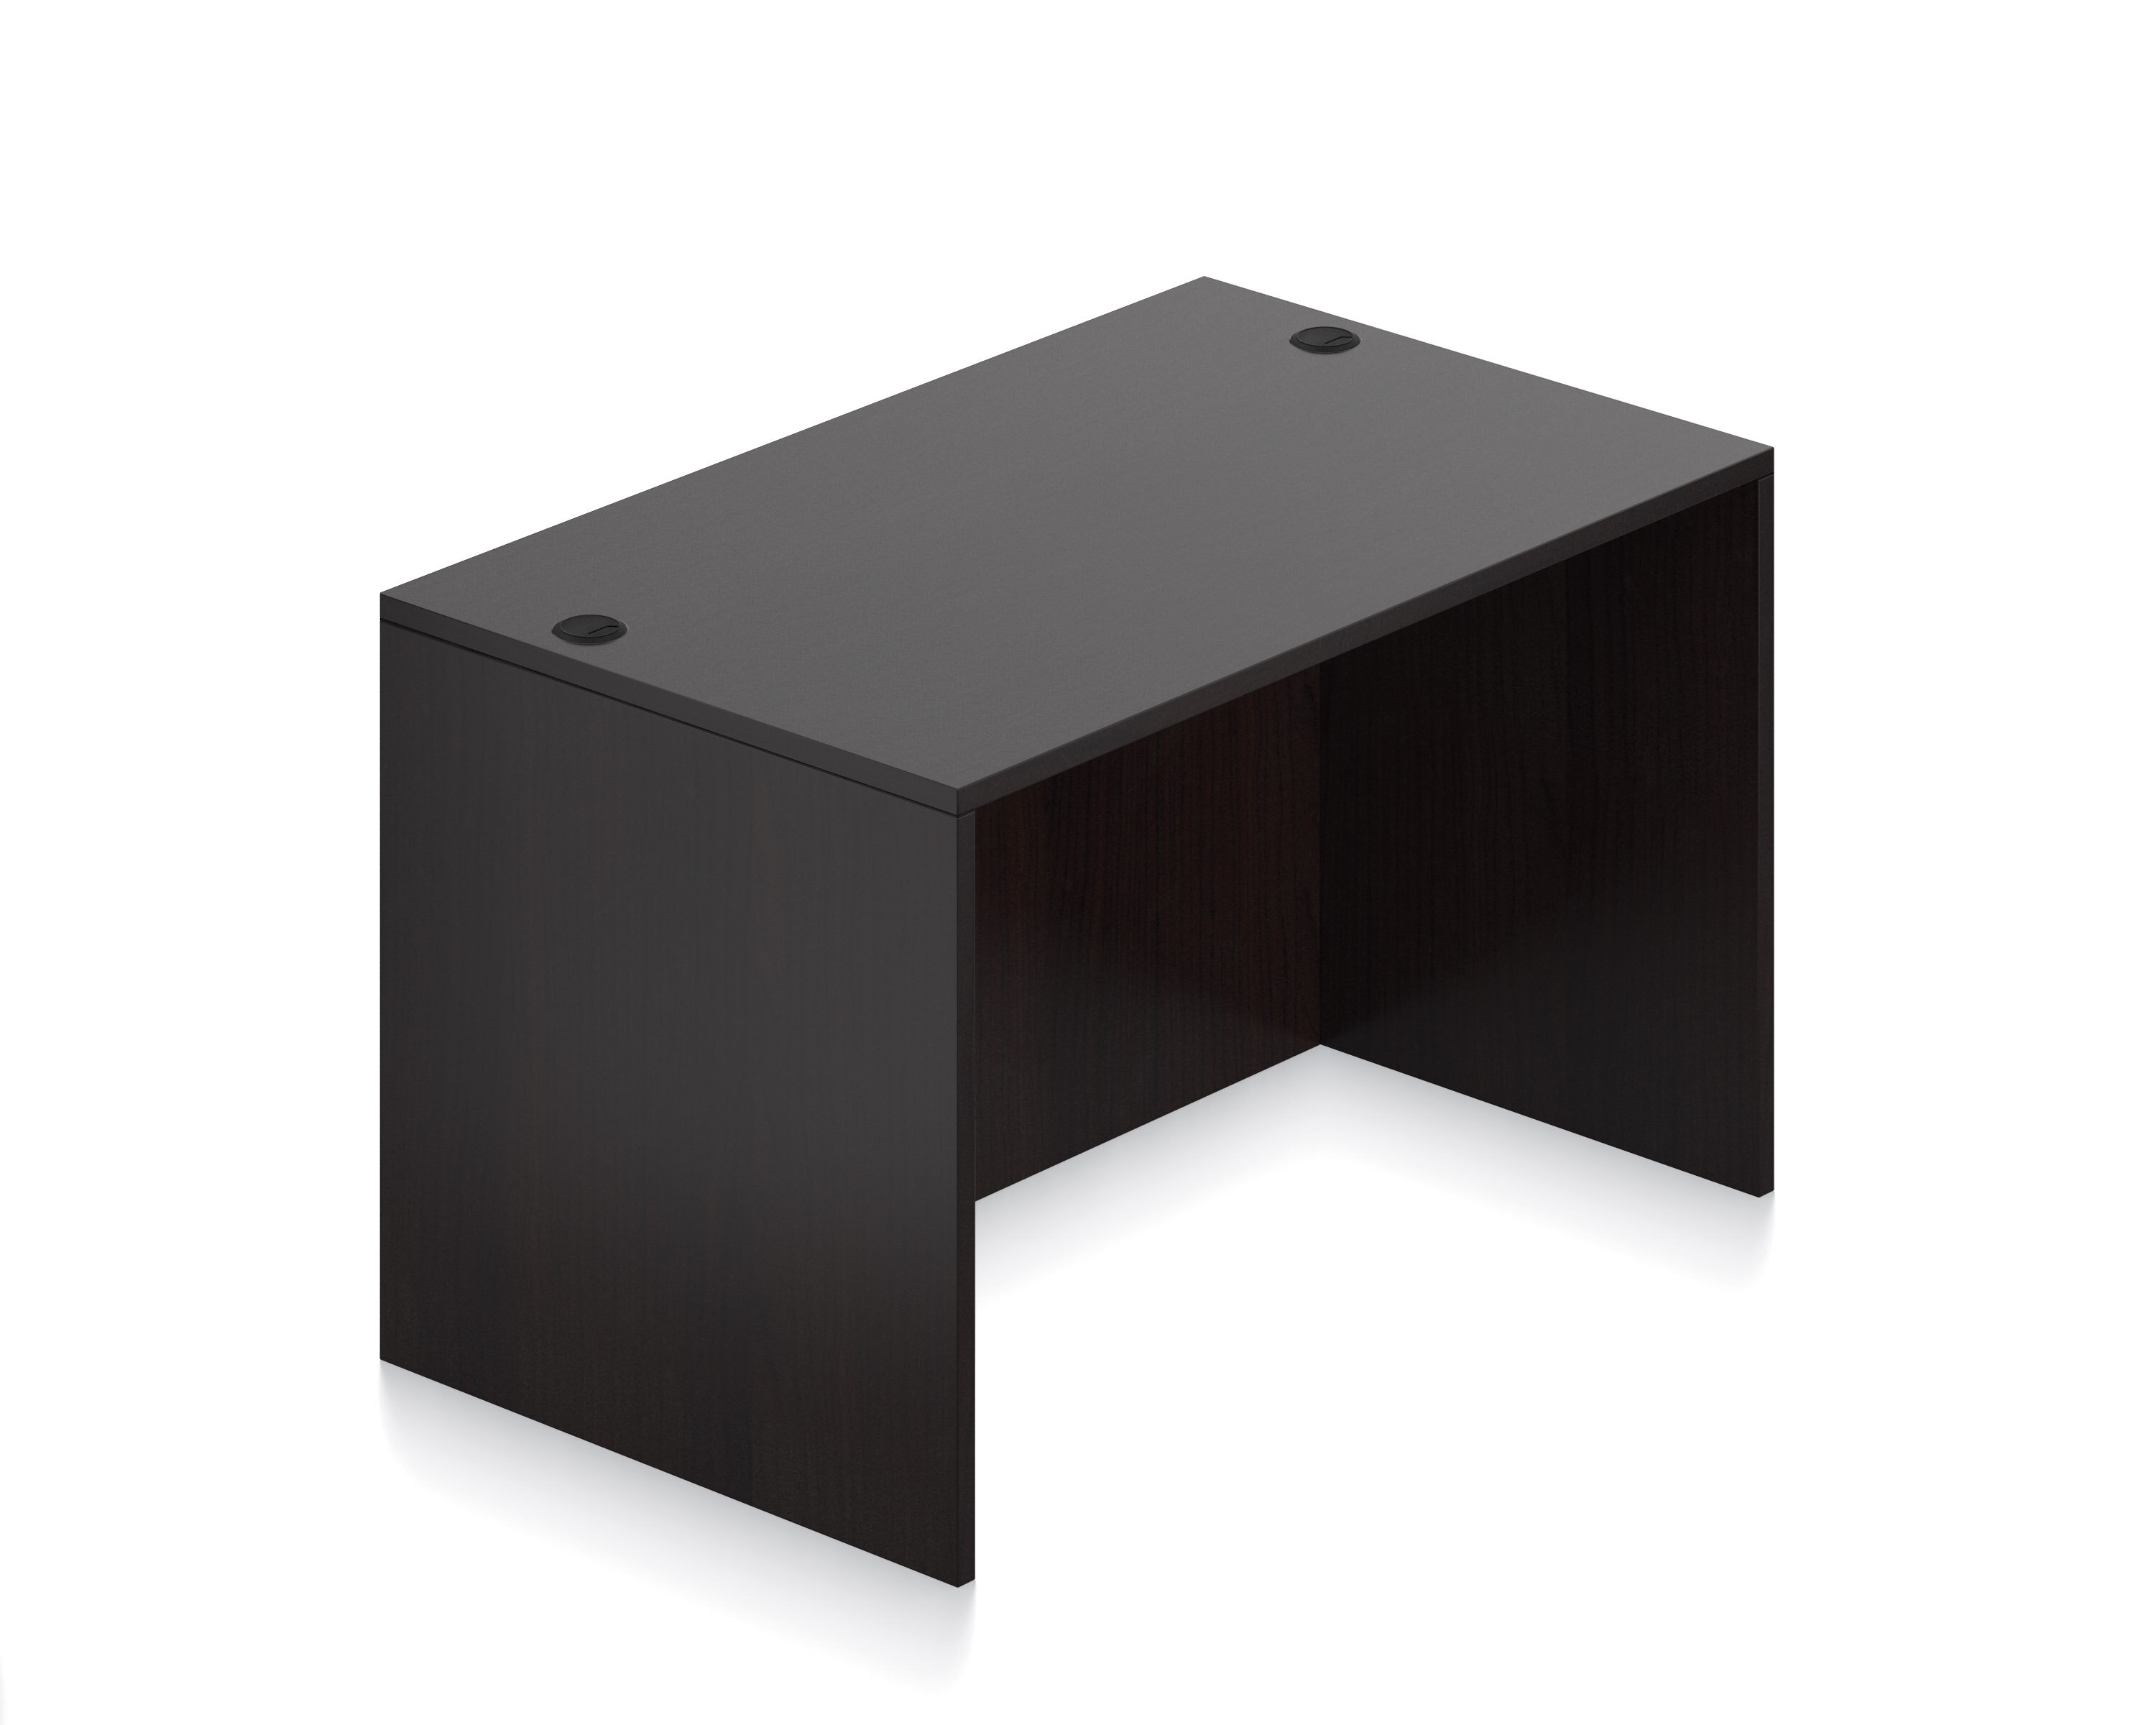 desk furniture grommets base conference maple custom foot with stainless boardroom steel table birdseye